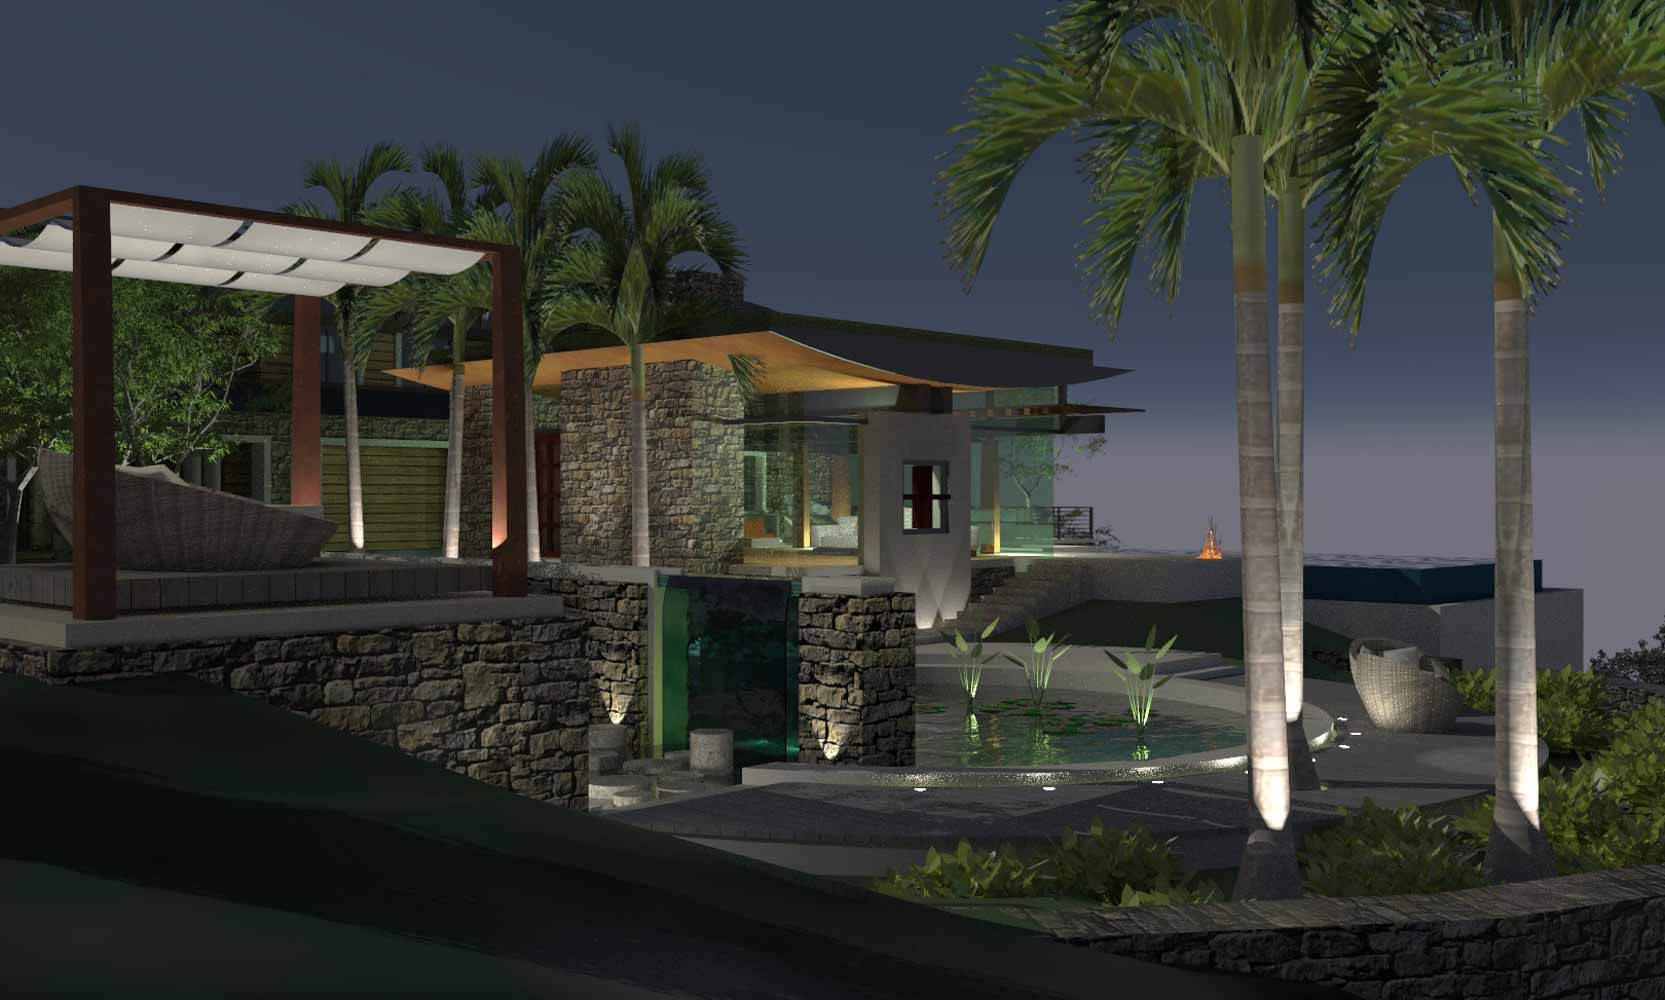 Arteriors Architects Evening View of Los Angeles Calabasas California Glass House